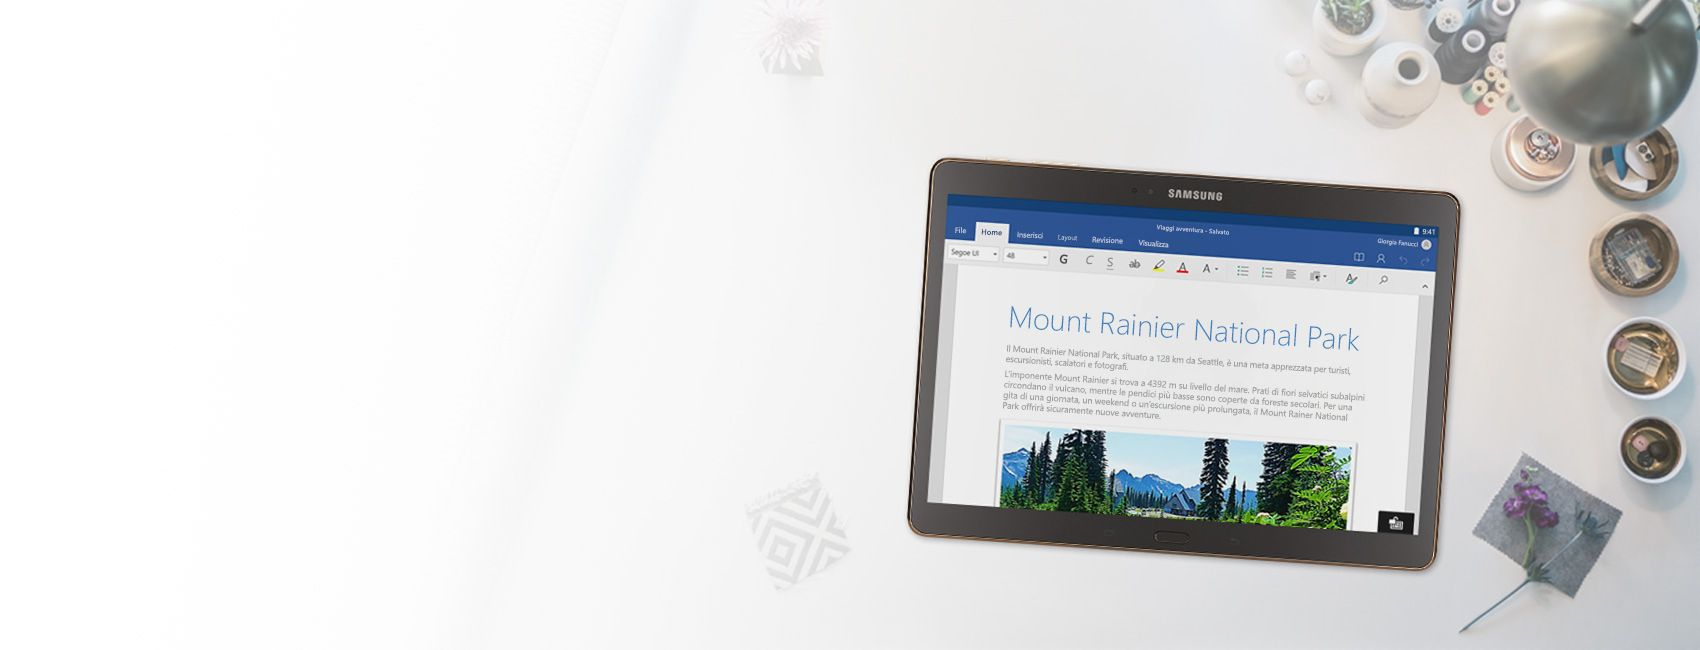 Tablet che visualizza un documento di Word su Mount Rainier National Park